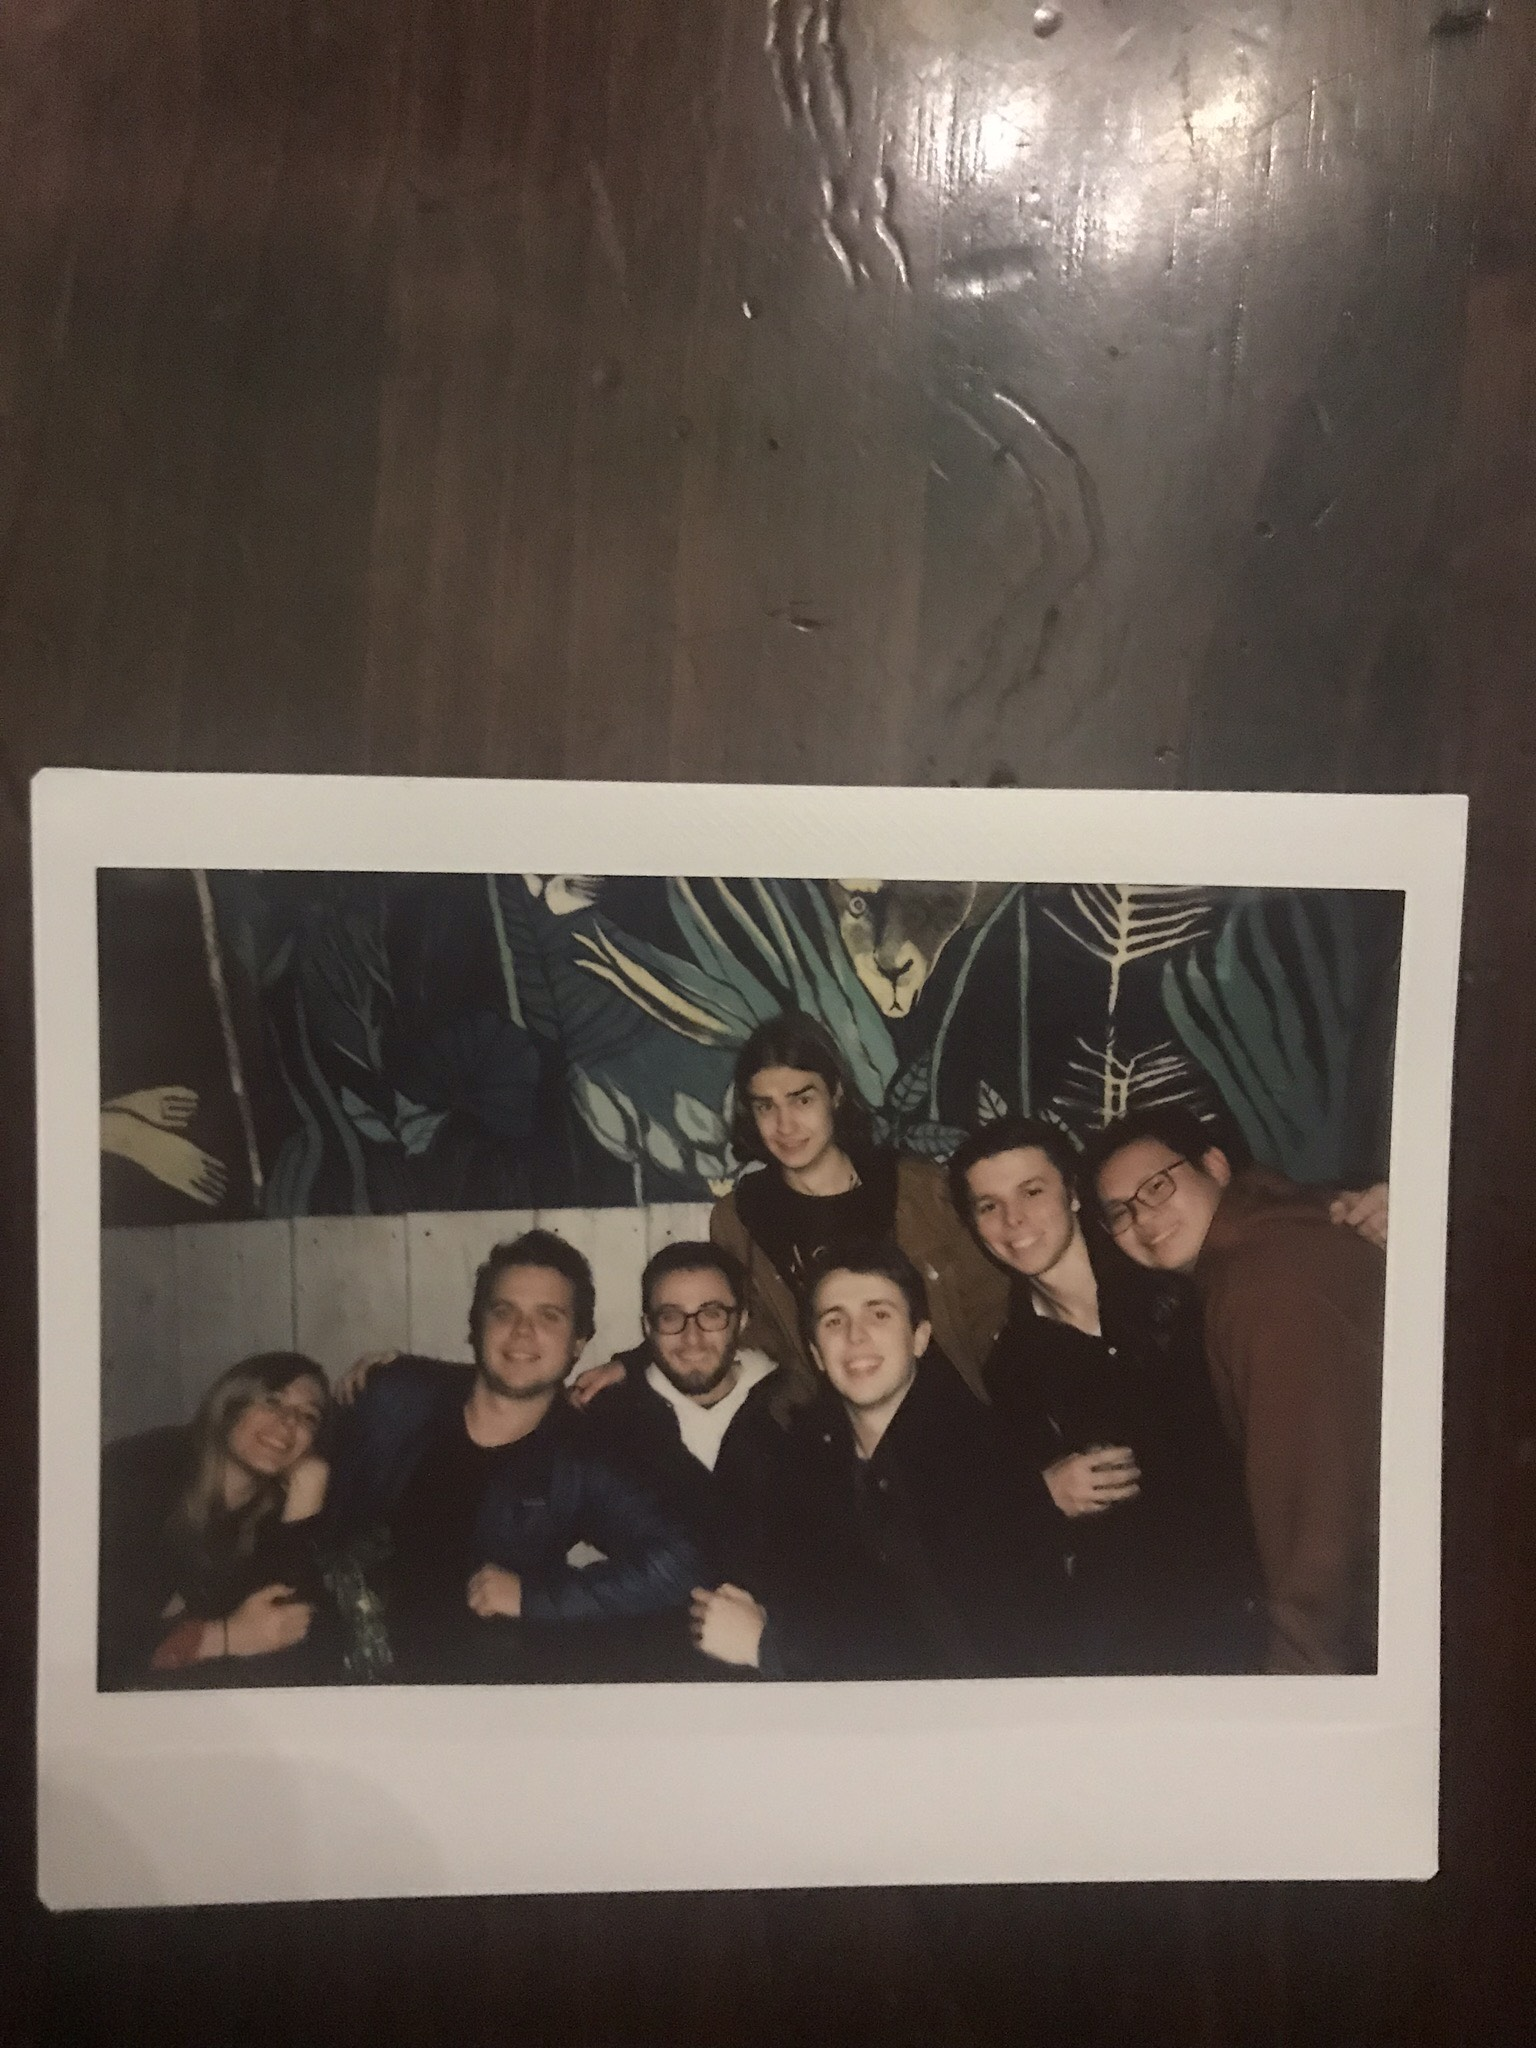 polaroid of me and my friends